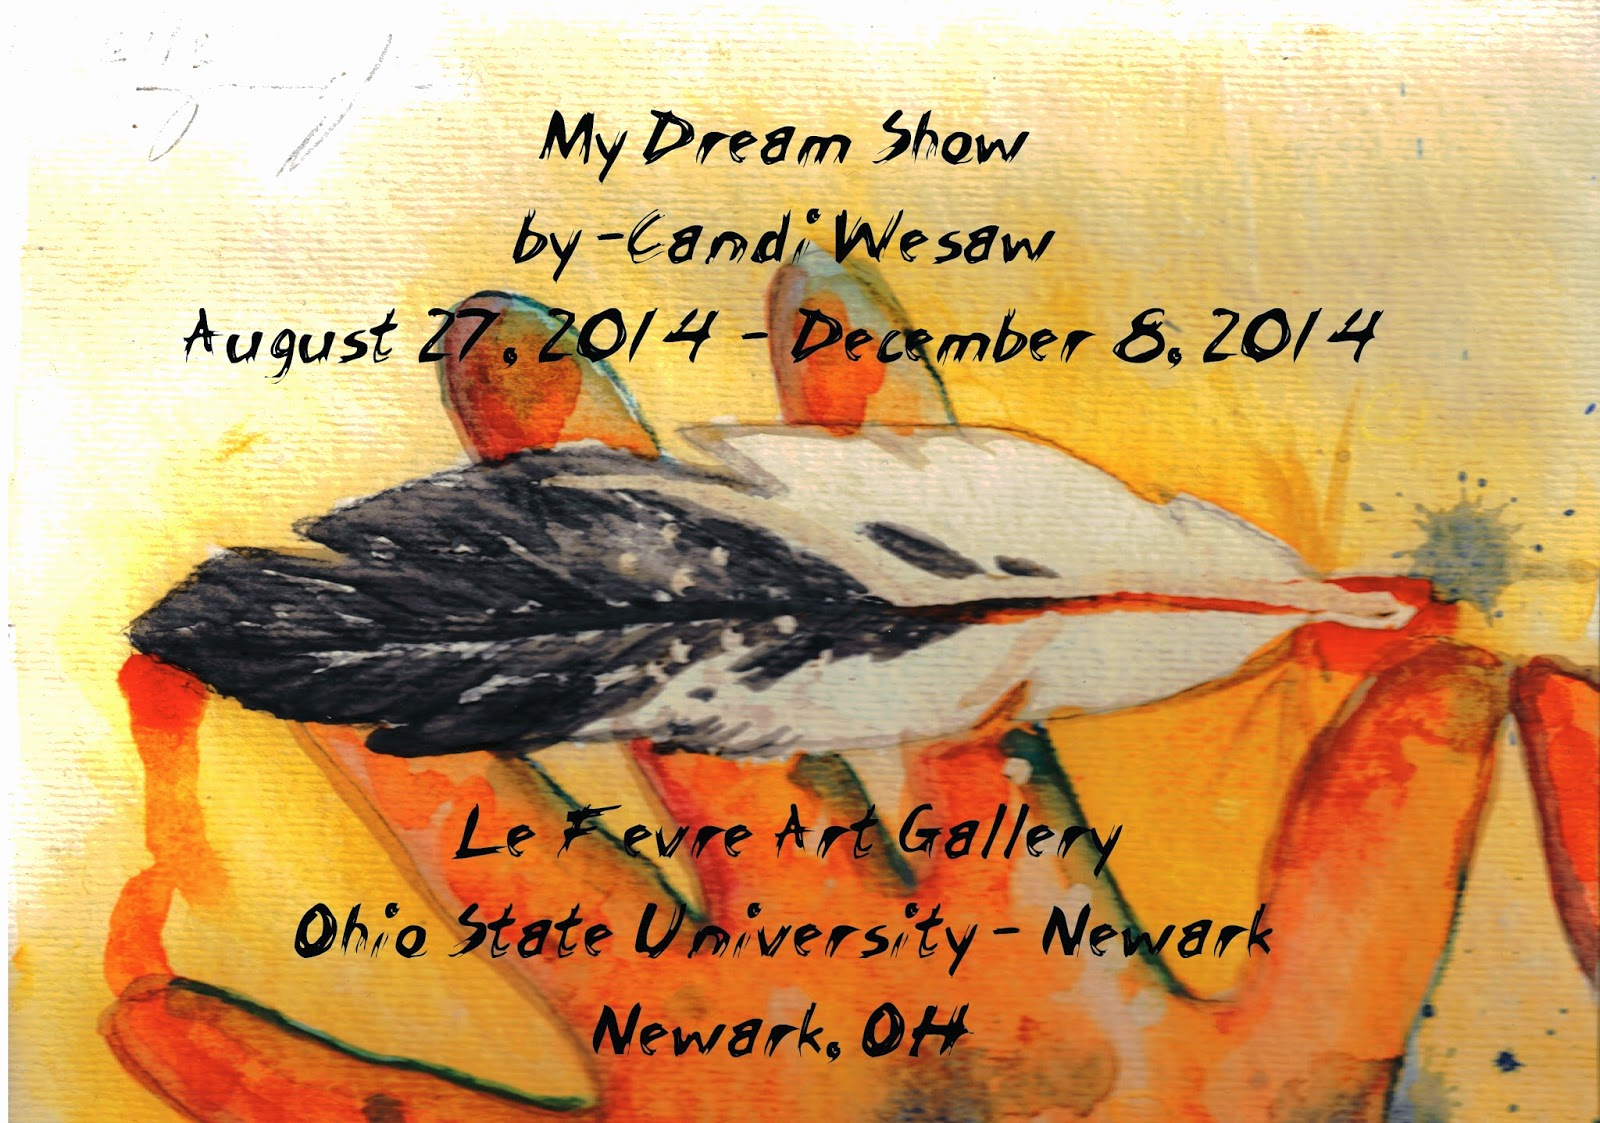 My Dream Show by Candi Wesaw August 27 - December 8, 2014 Exhibit Postcard